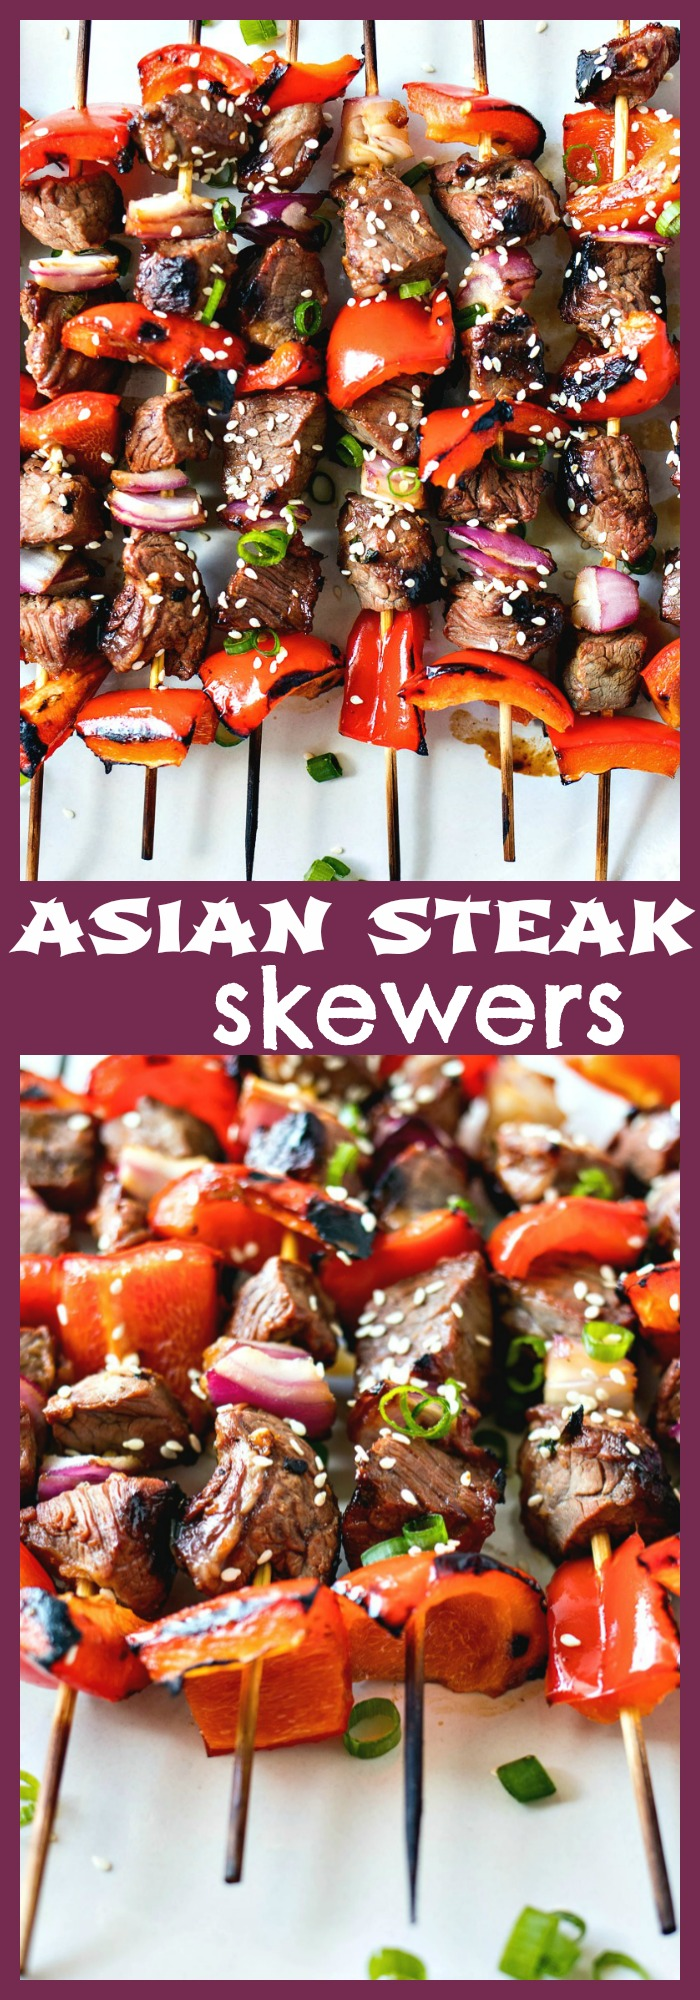 Asian Steak Skewers photo collage